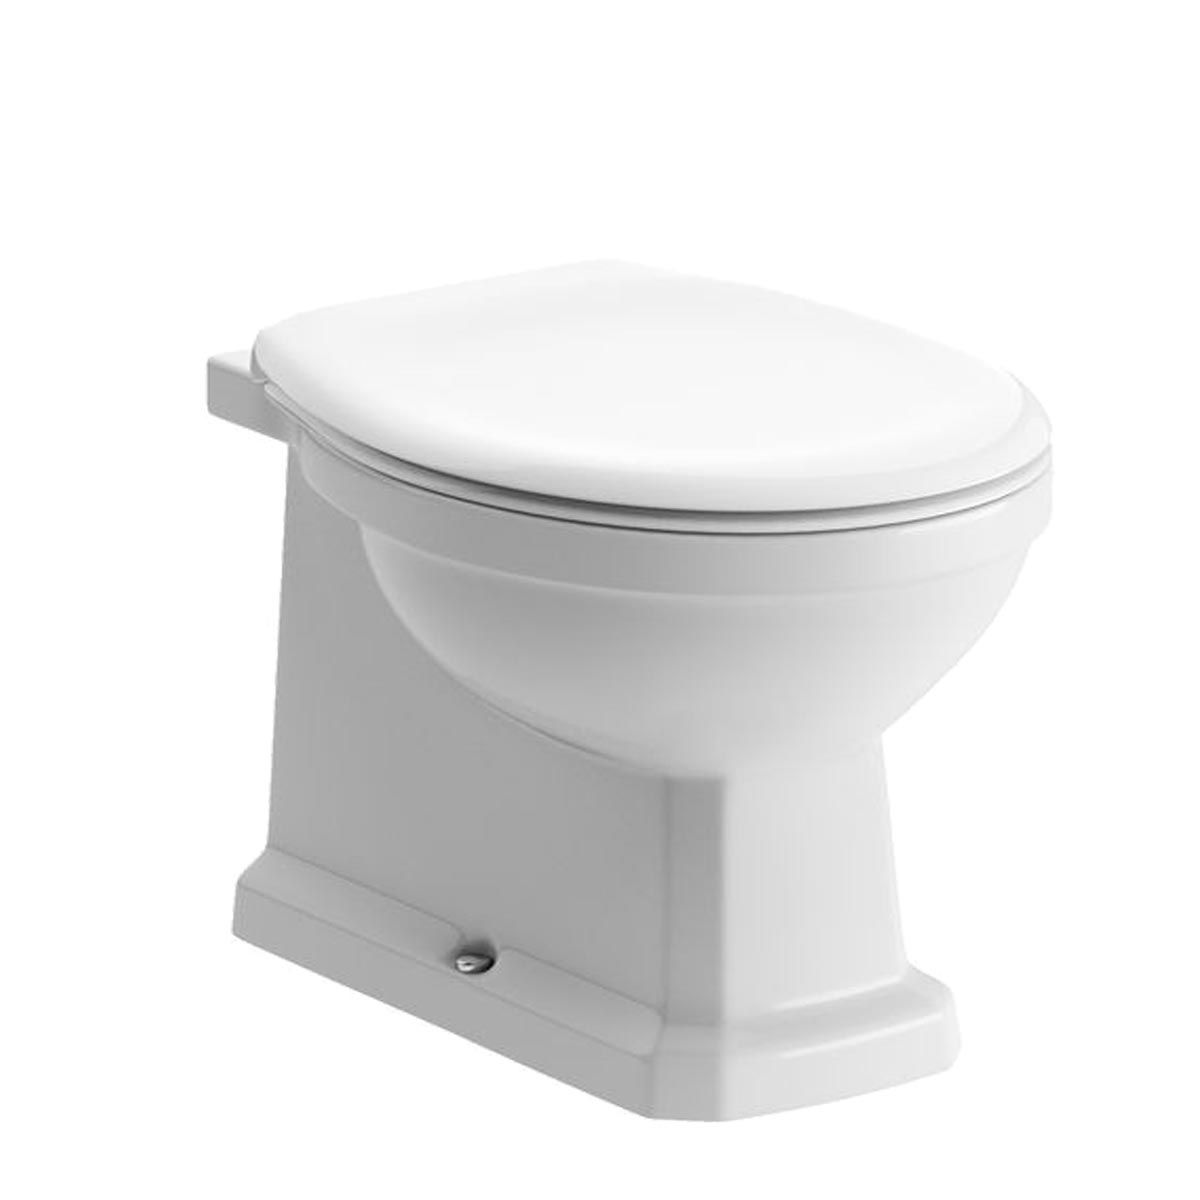 BTL Sherbourne Back To Wall Pan with Acrylic Seat